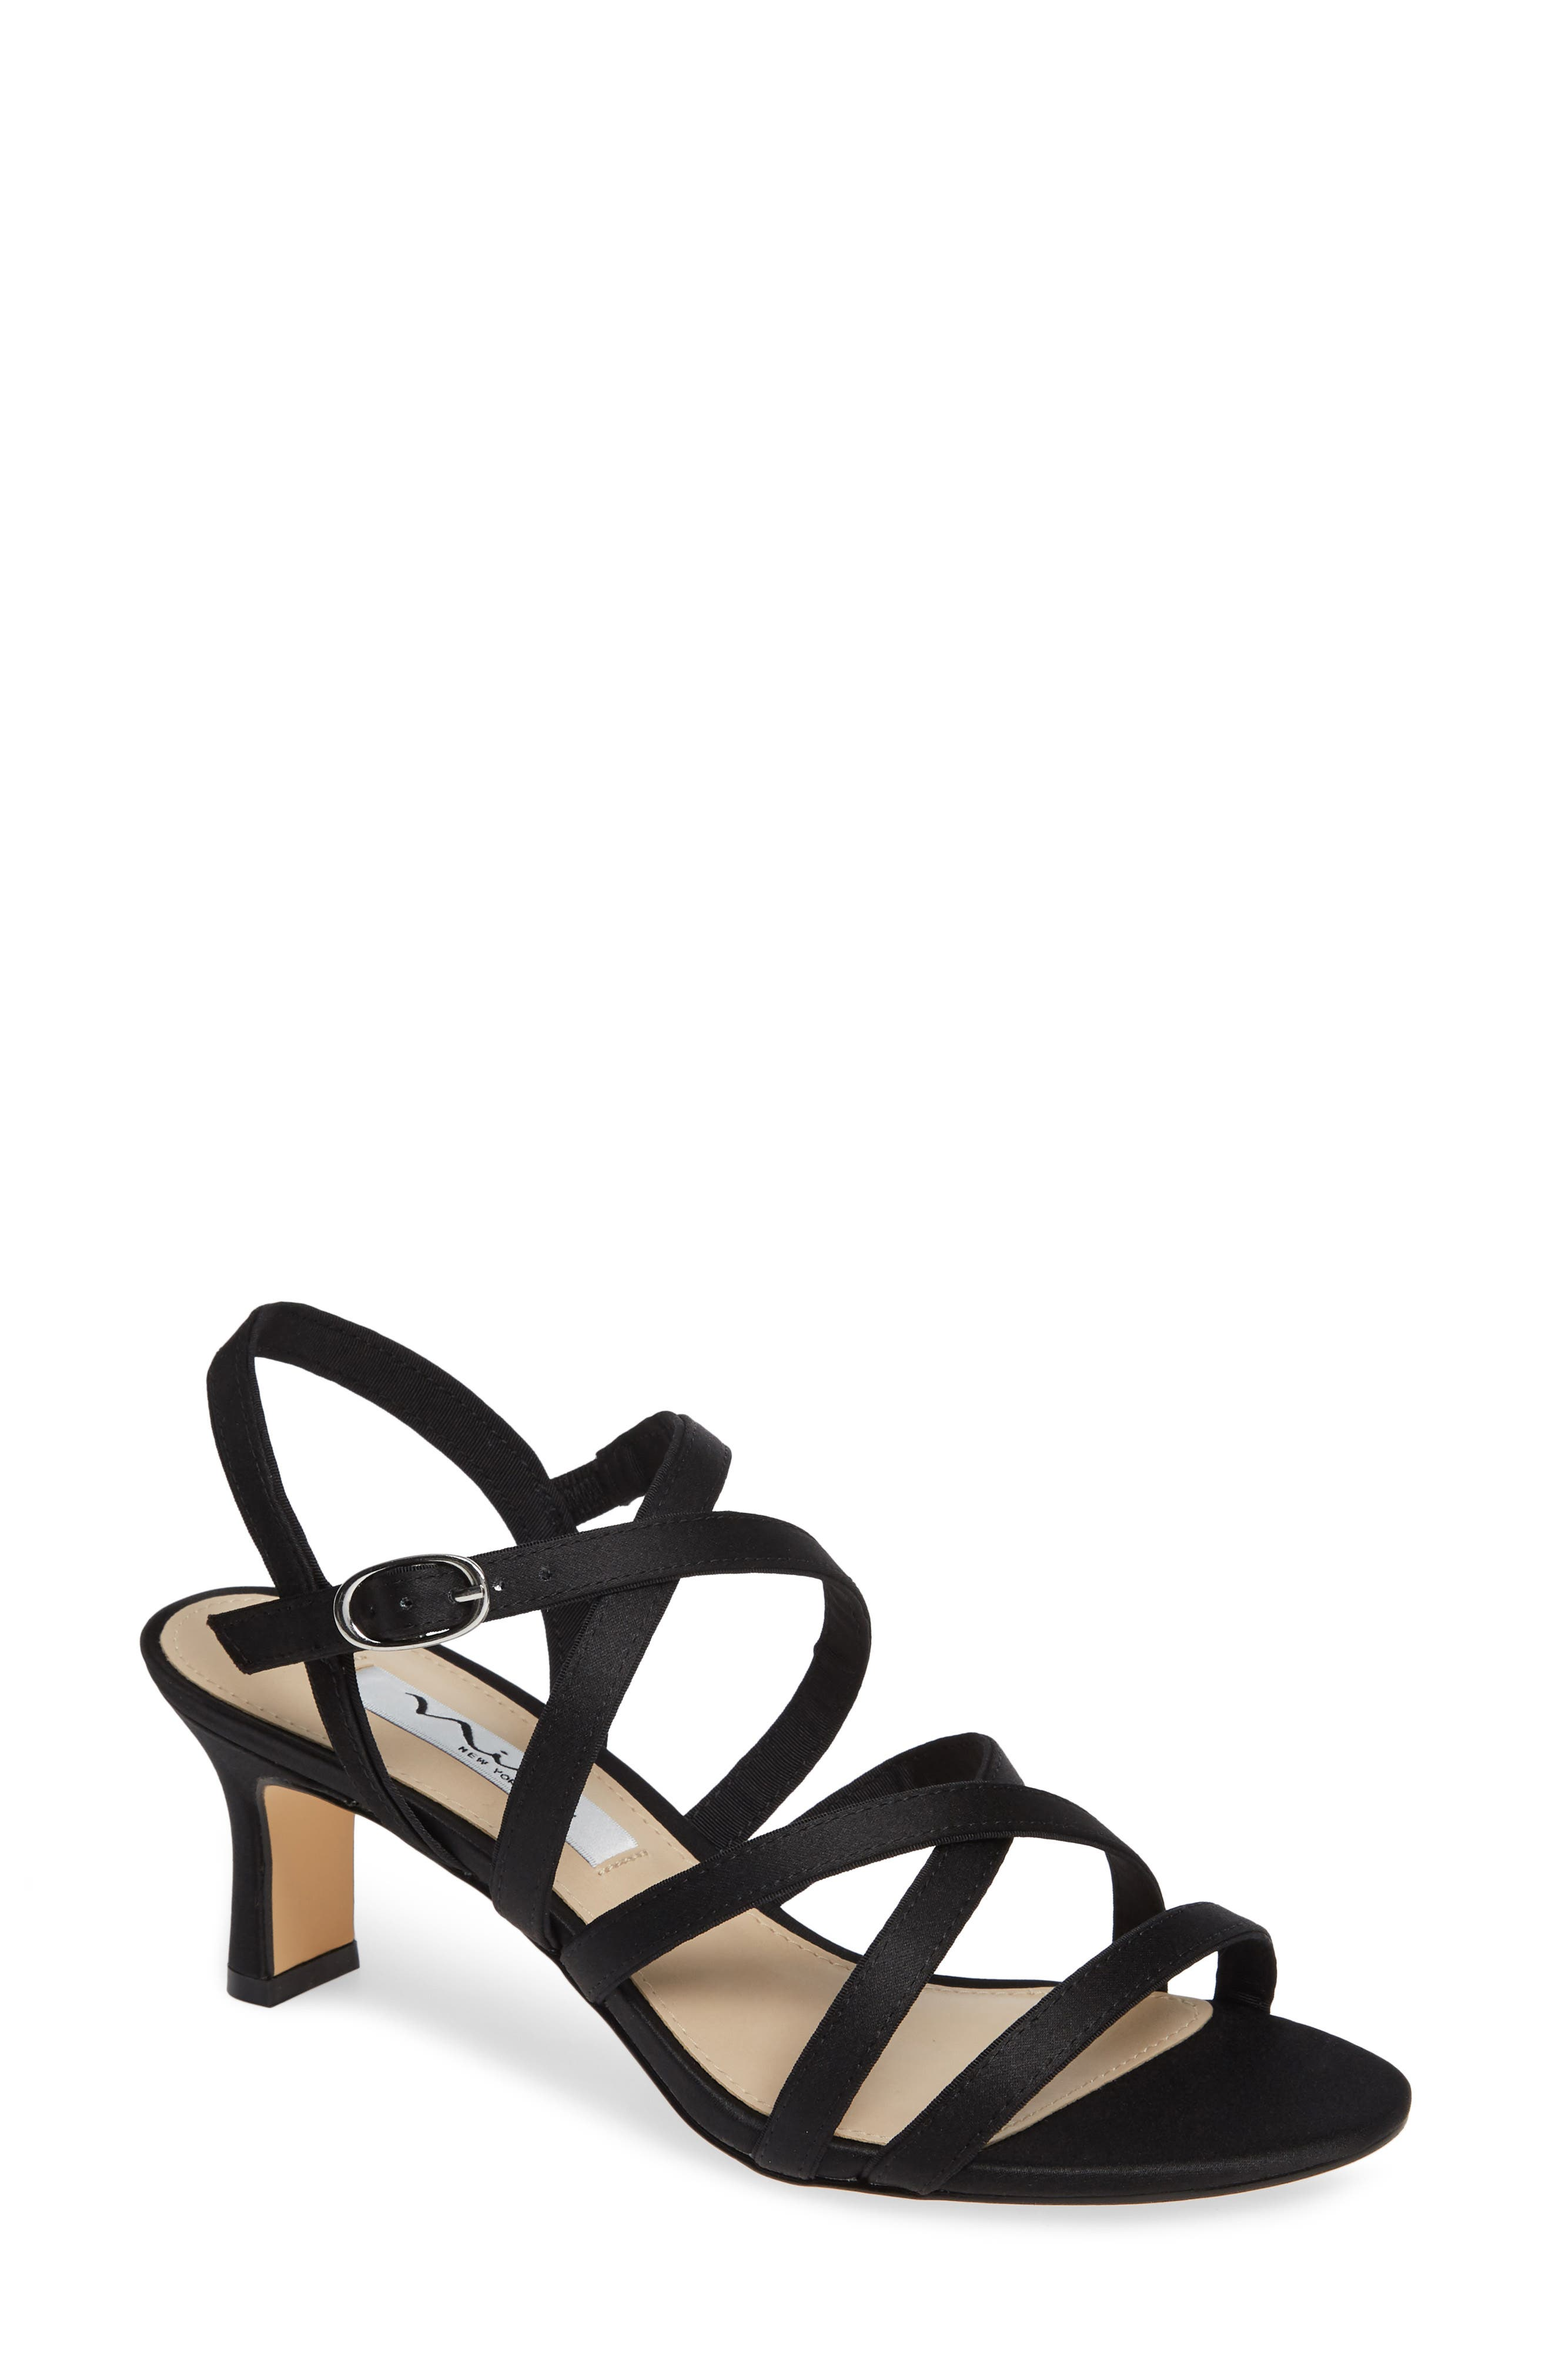 Genaya Strappy Evening Sandal,                         Main,                         color, BLACK SATIN